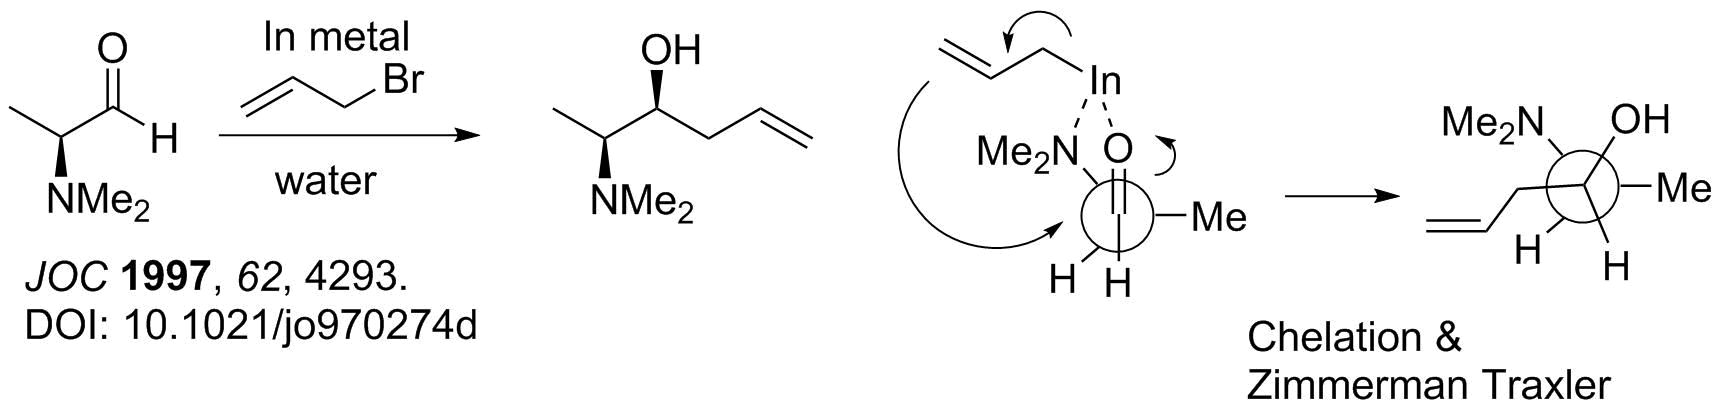 Carbonyl Addition 16